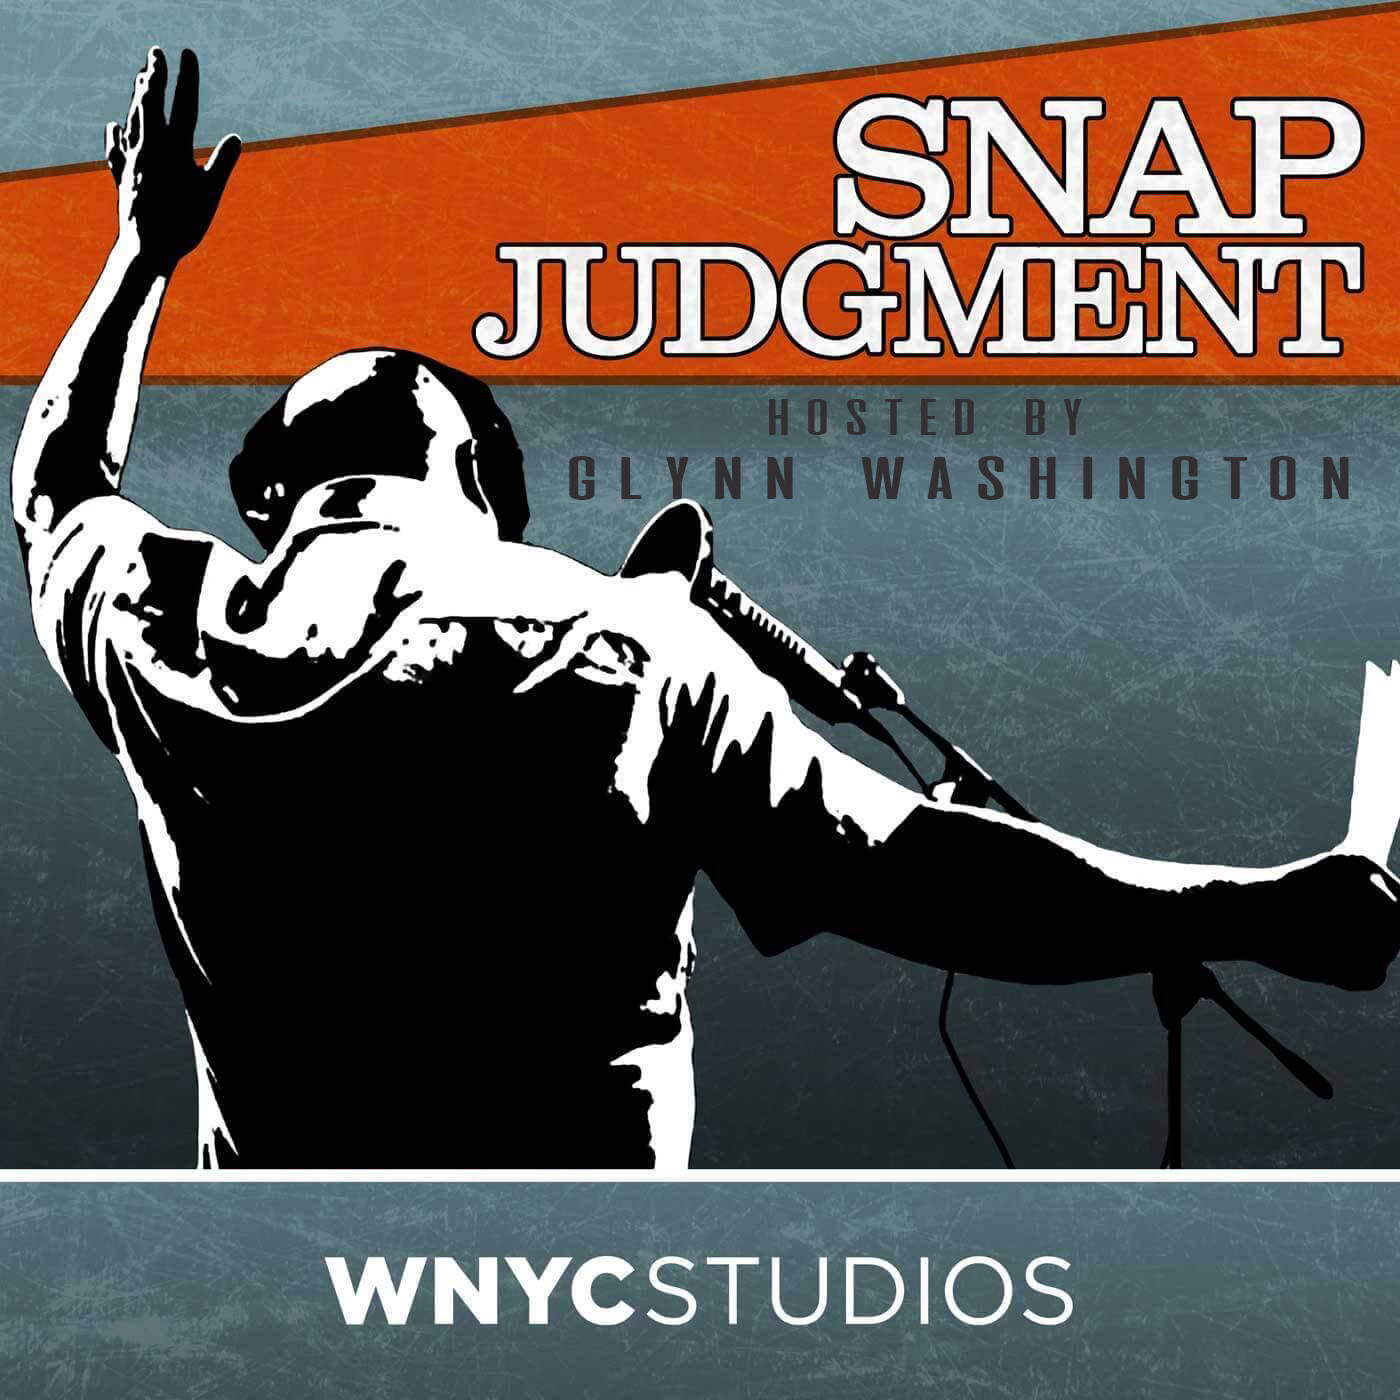 https://www.wnycstudios.org/podcasts/snapjudgment